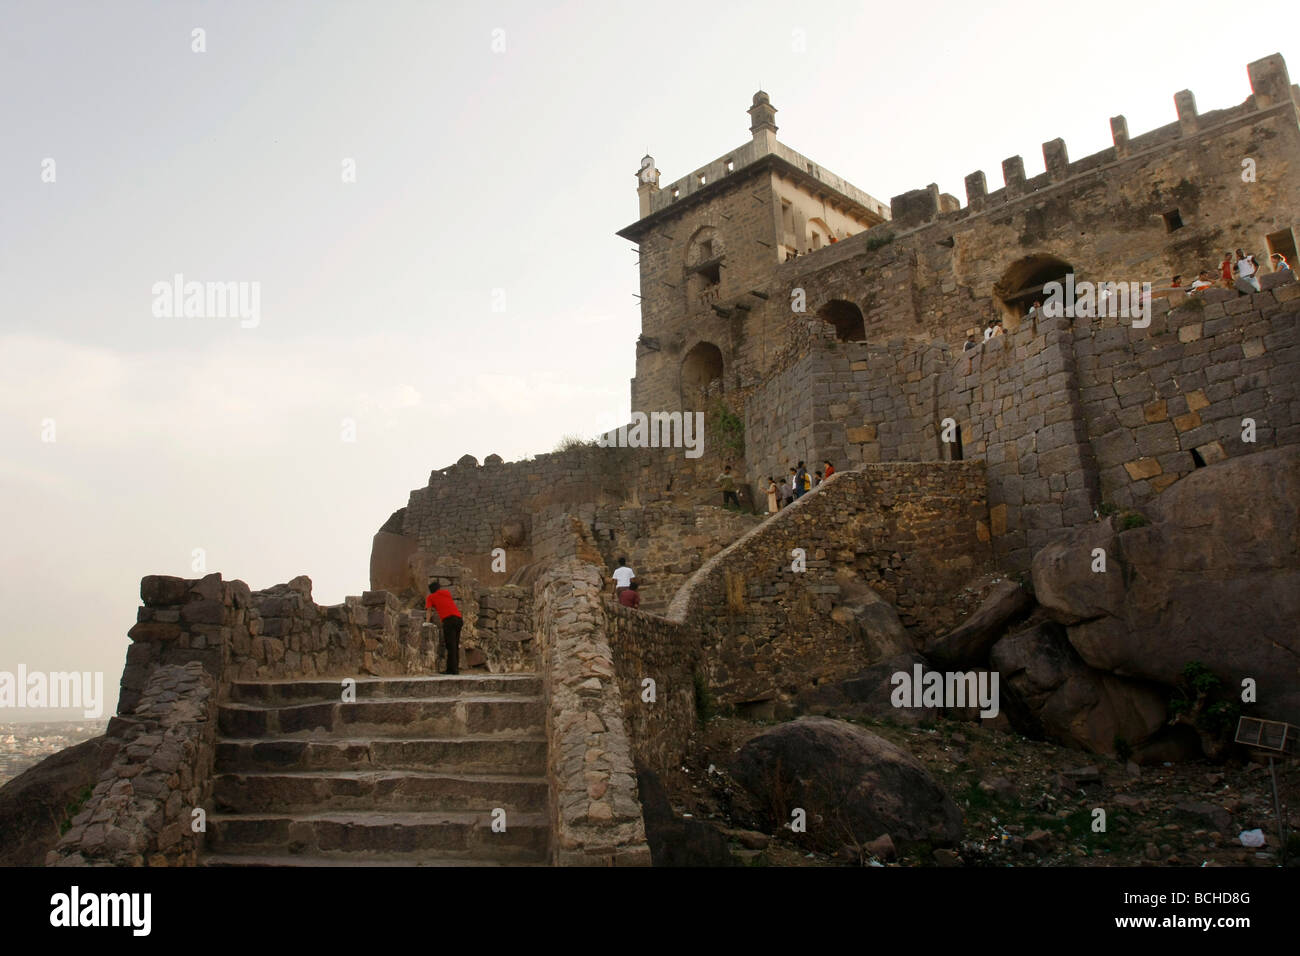 Golconda Fort in Hyderabad in India - Stock Image